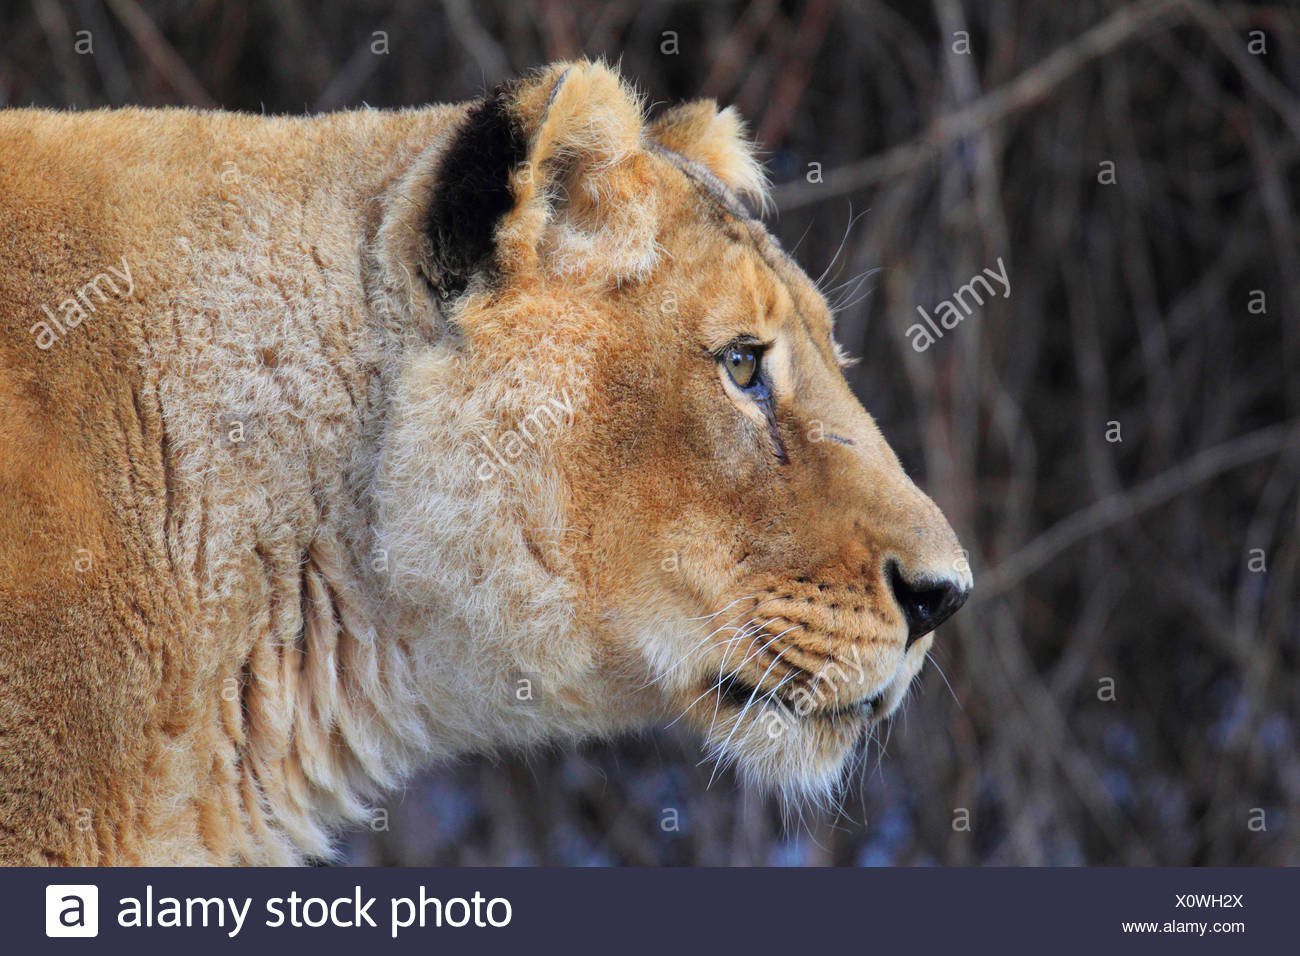 Asiatic lion (Panthera leo persica goojratensis), portrait of a lioness - Stock Image